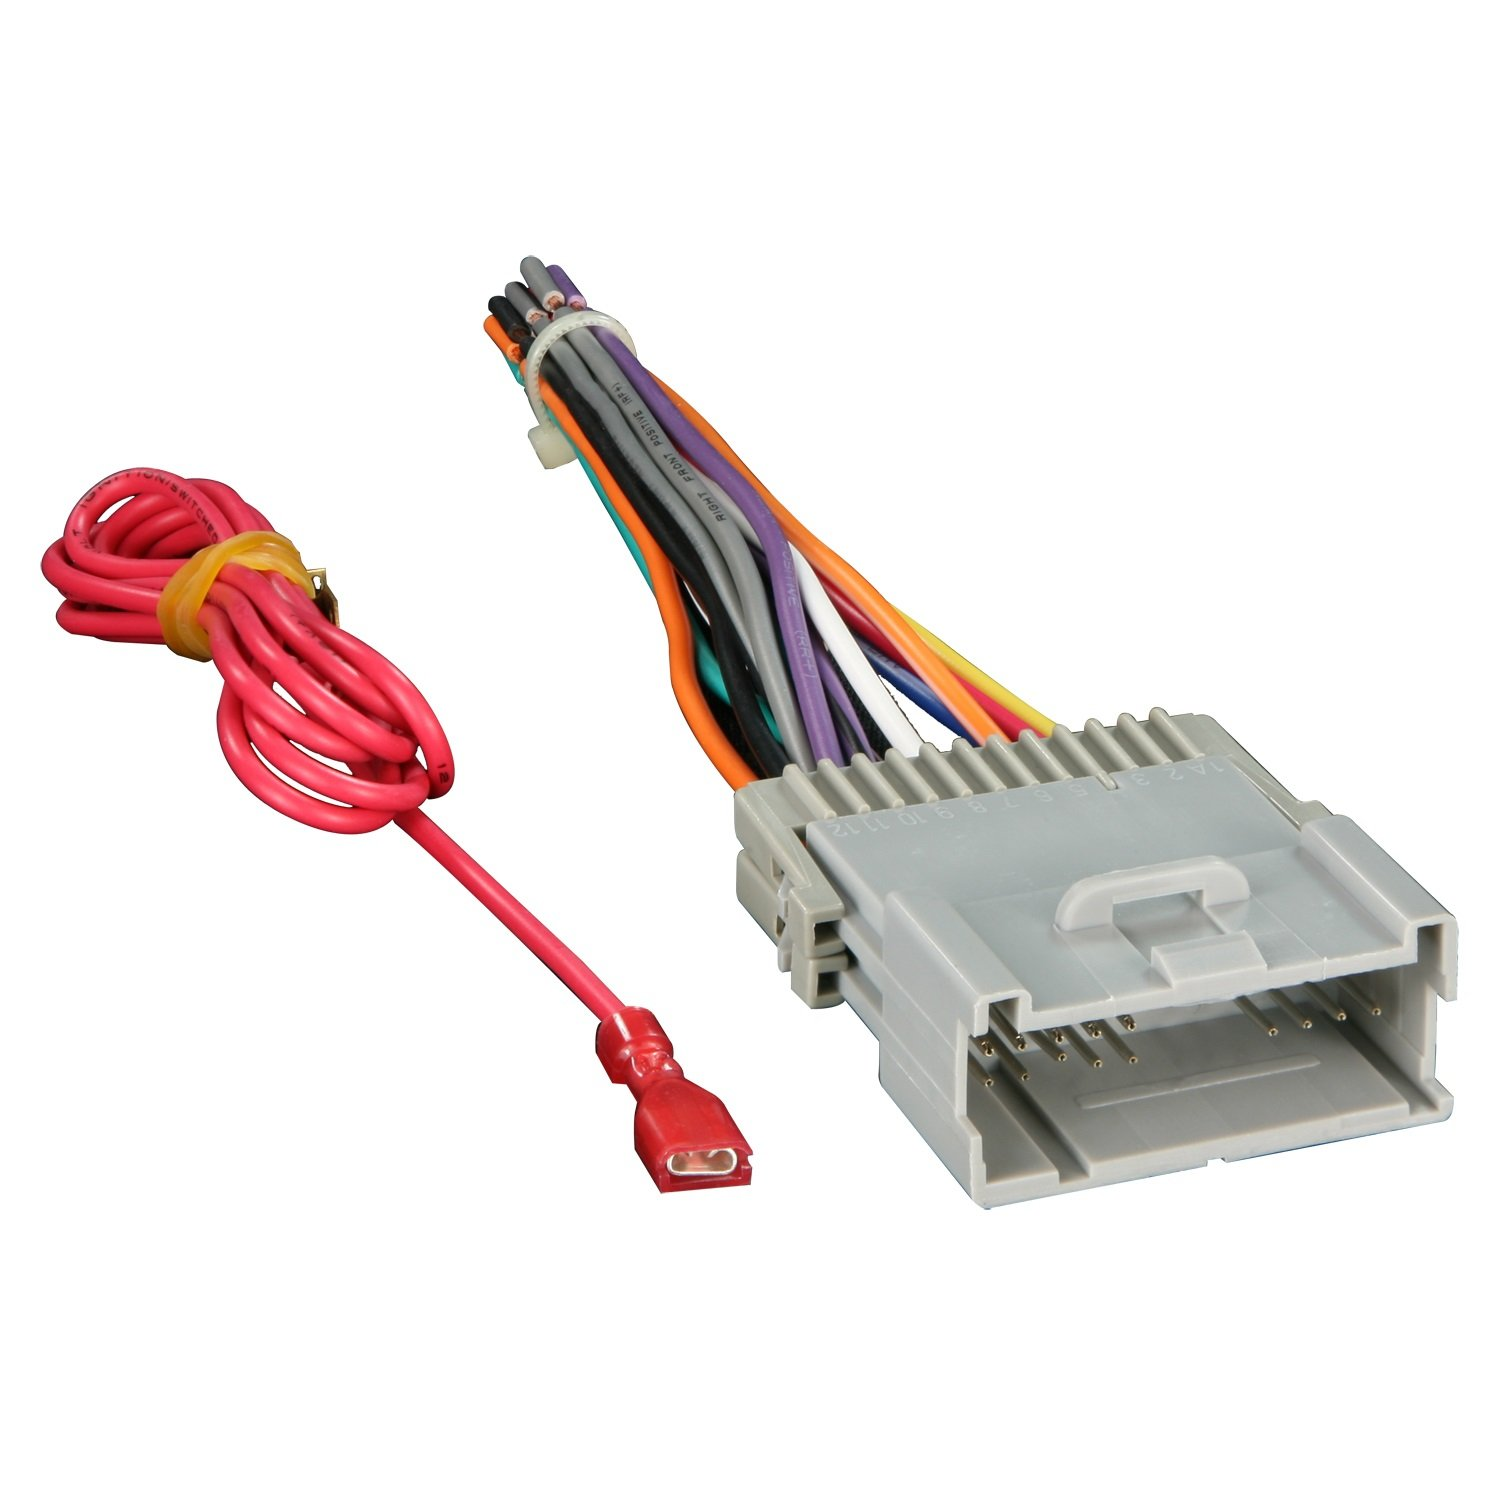 61eewxp9orL._SL1500_ amazon com metra 70 2003 radio wiring harness for gm 98 08 2007 GMC Sierra at gsmportal.co